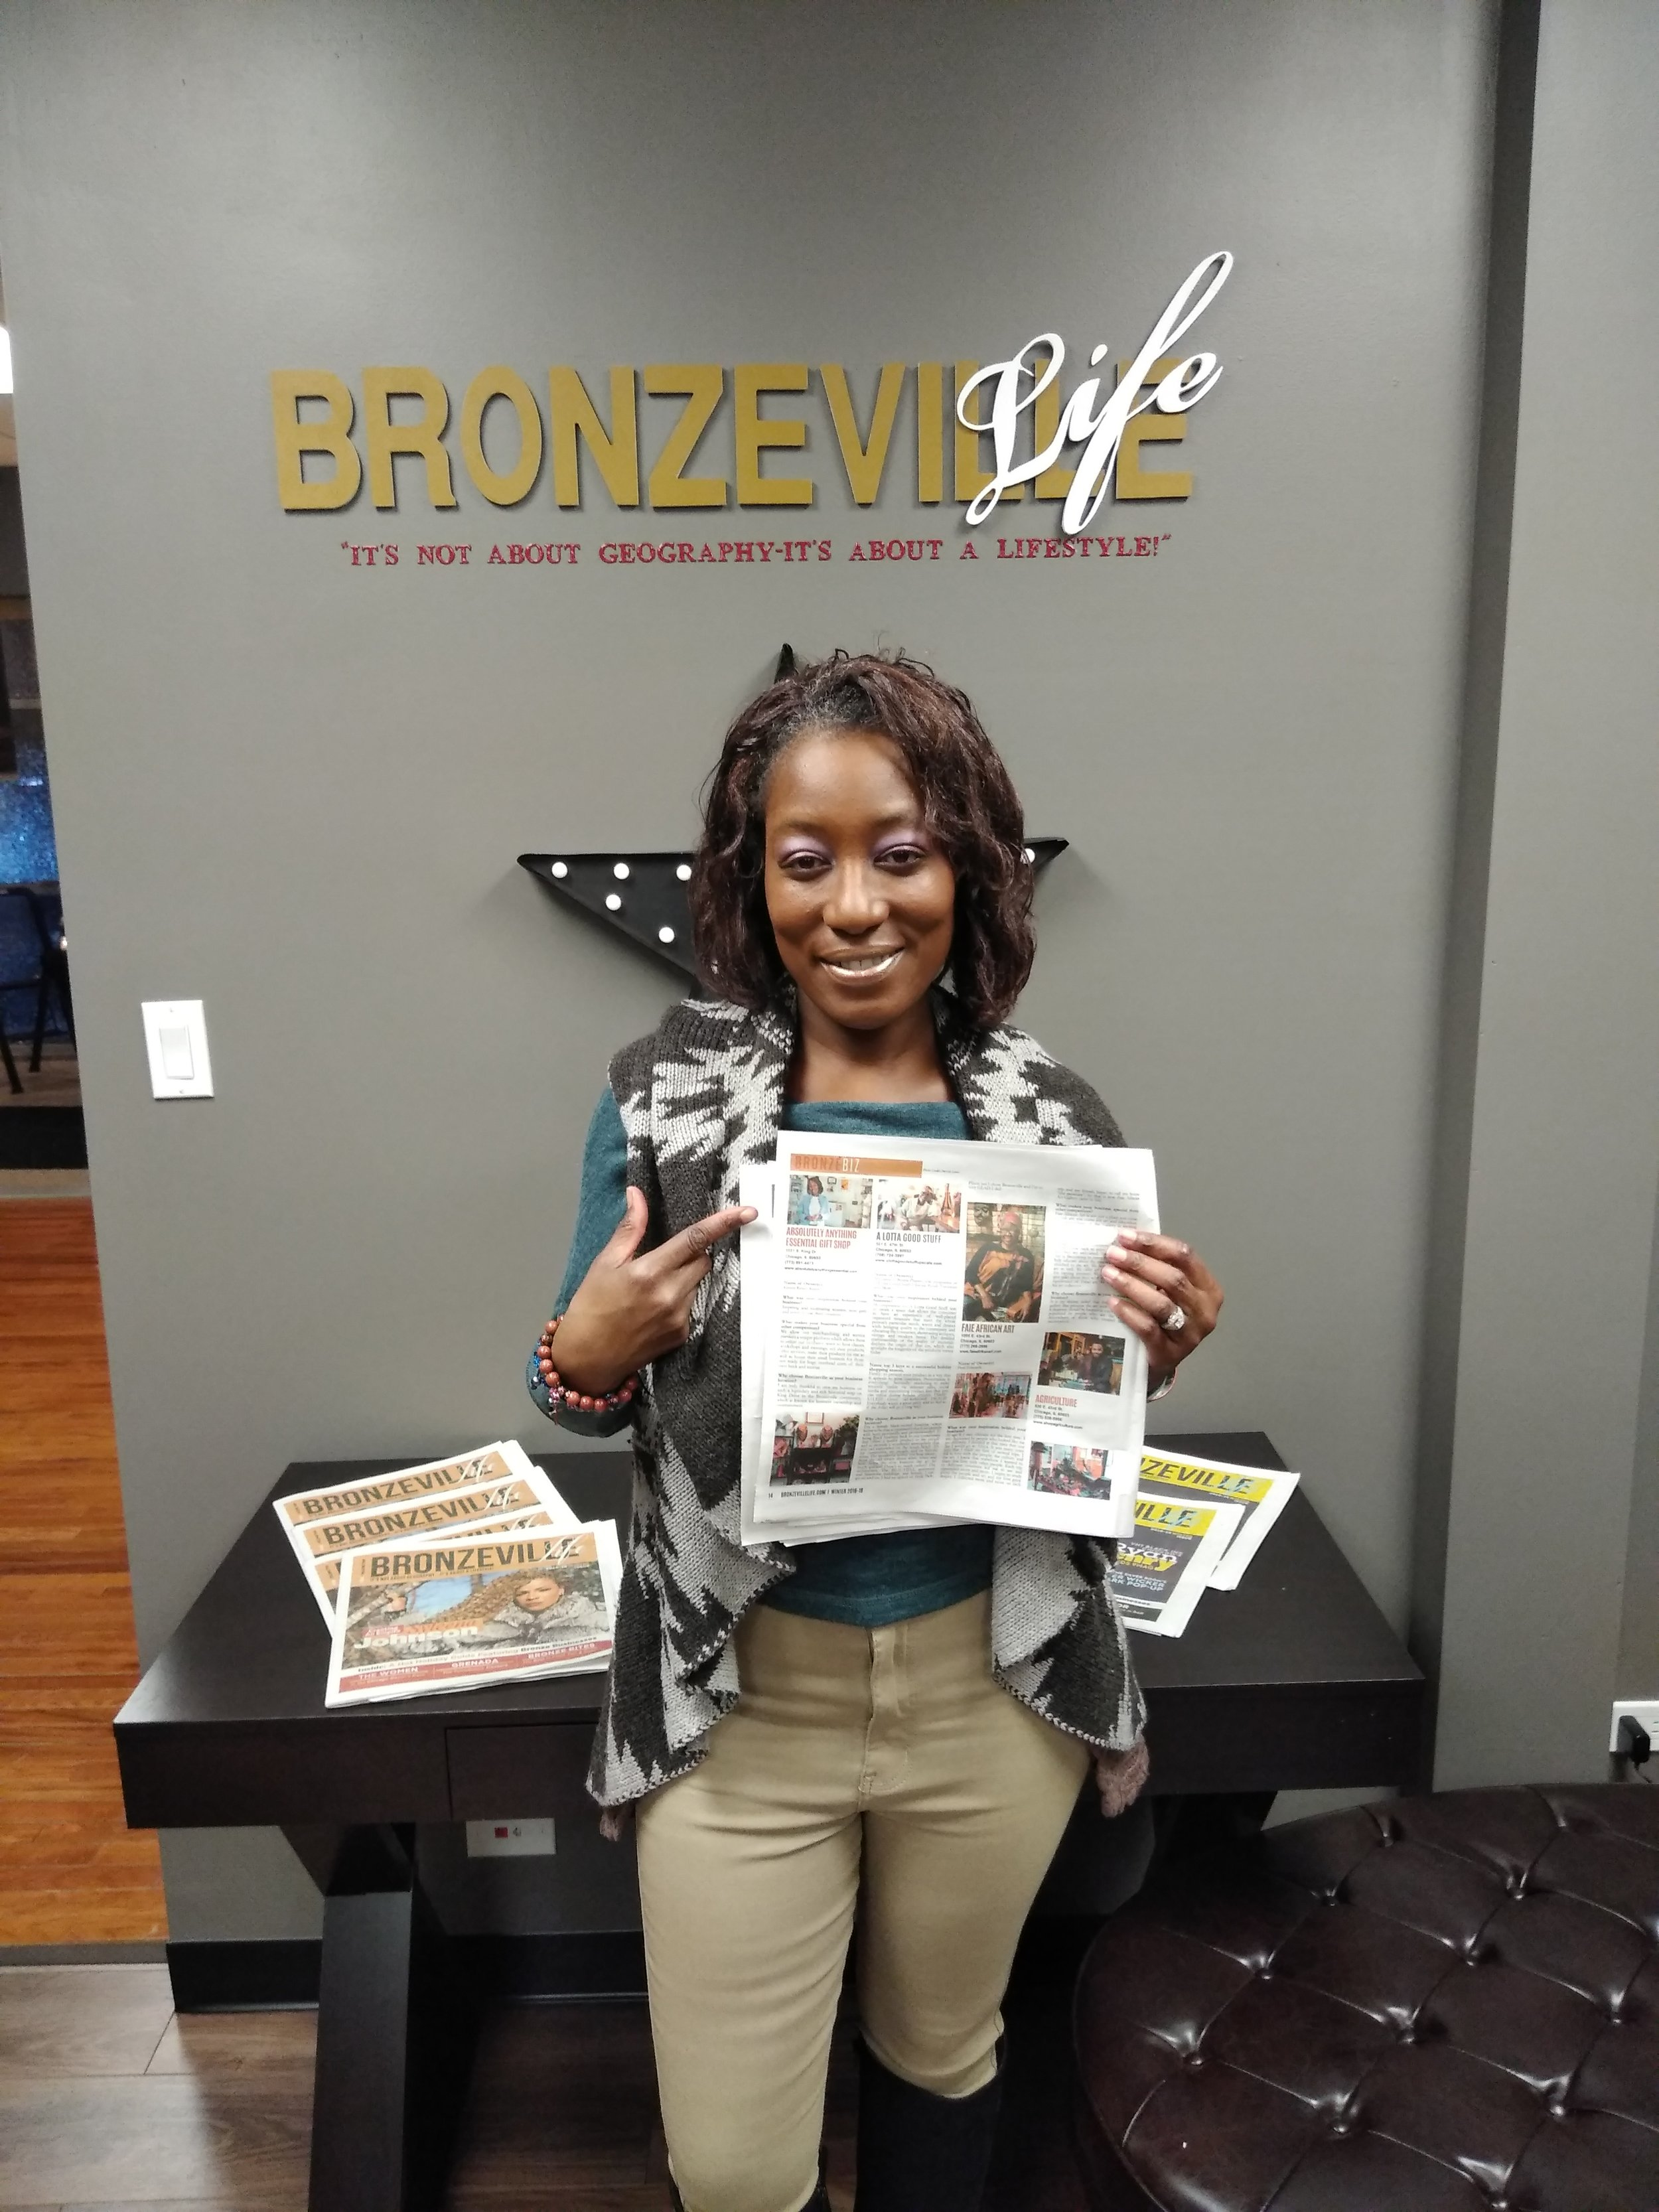 Owner Kenya Renee shows off her business being highlighted in Chicago's new Bronzeville Life Newspaper. Public Relations Professional, Jada Russell, in collaboration with Quad Communities Development Corporation of Chicago made this dream come true. ~Thank you Defender Charities.